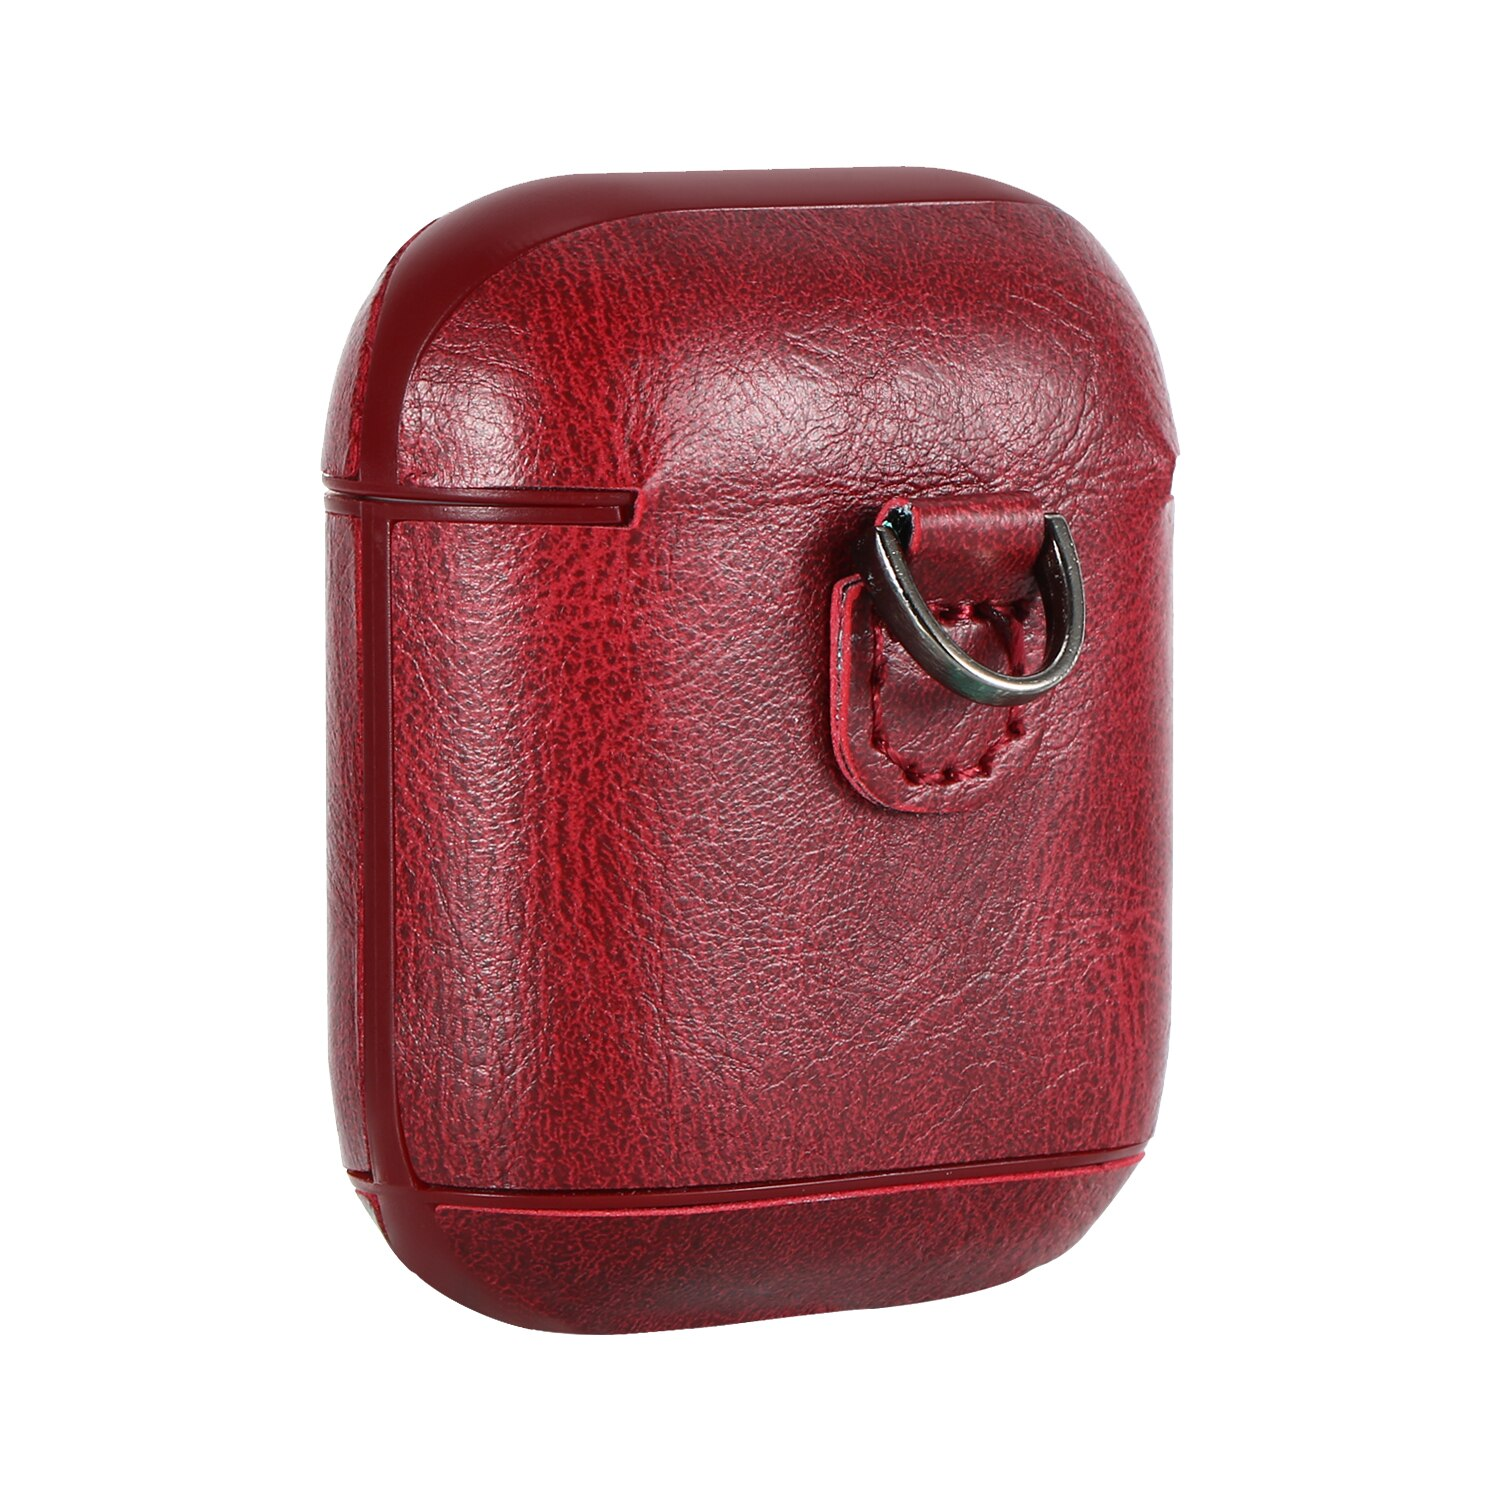 For Airpods Case Leather Luxury Bluetooth Ear-Phone Skin Covers For iPhone Air Pods 1 2 Gen Holders Coque Etui Aipods Fundas Wit